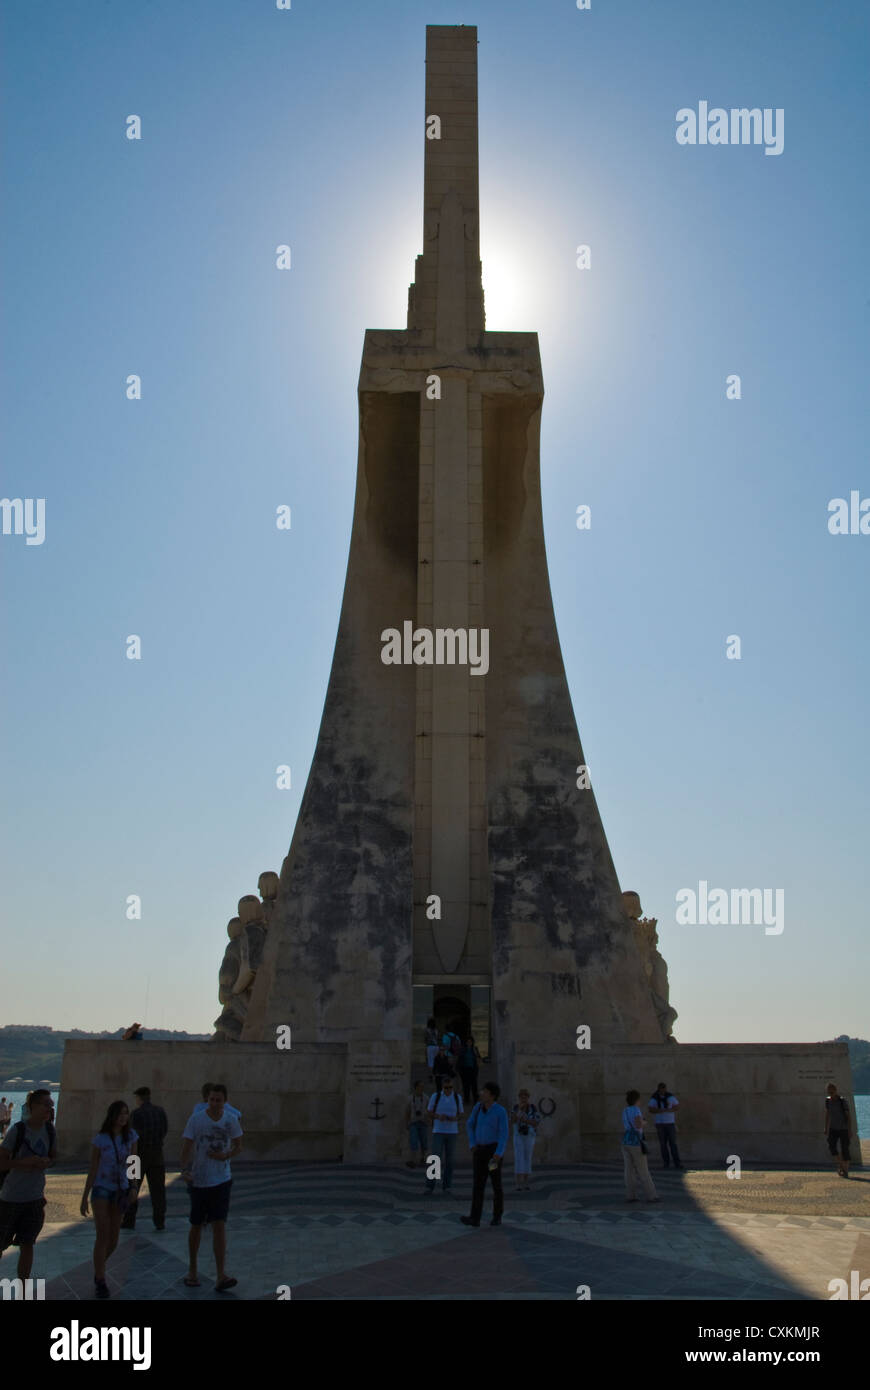 Monument to discoveries lisbon portugal europe - Stock Image